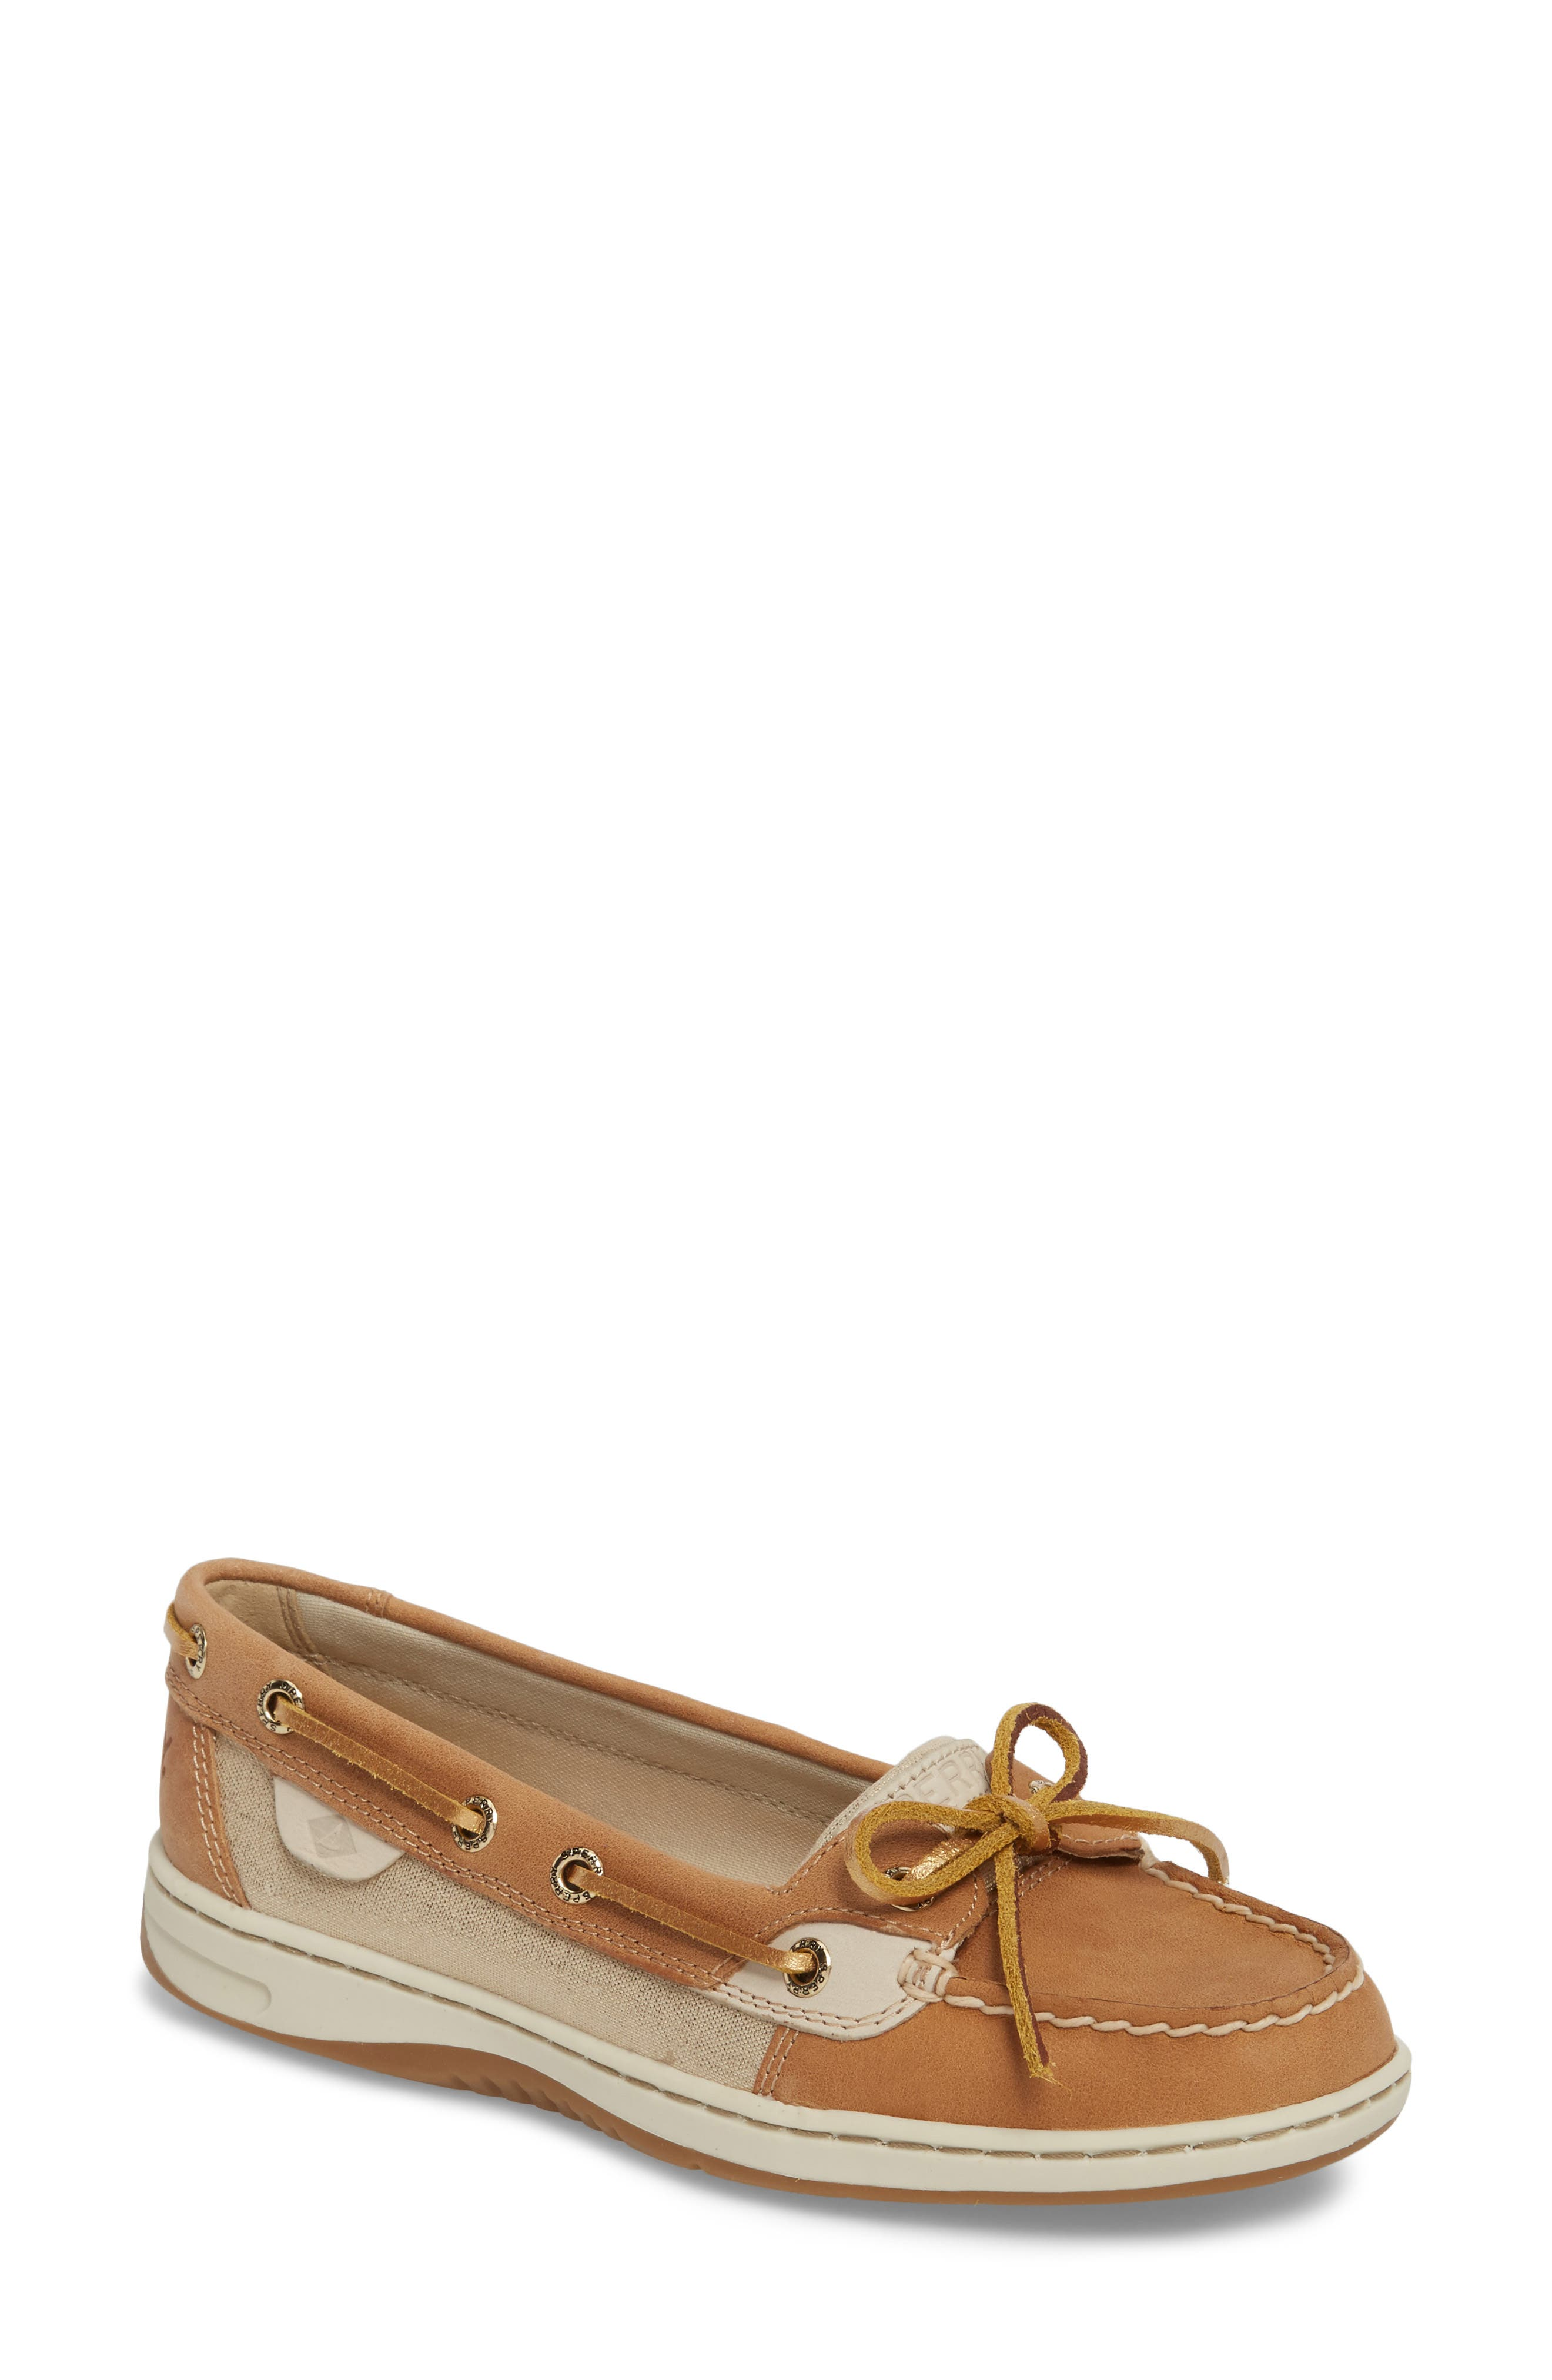 'Angelfish' Boat Shoe,                         Main,                         color, Linen Metallic Leather